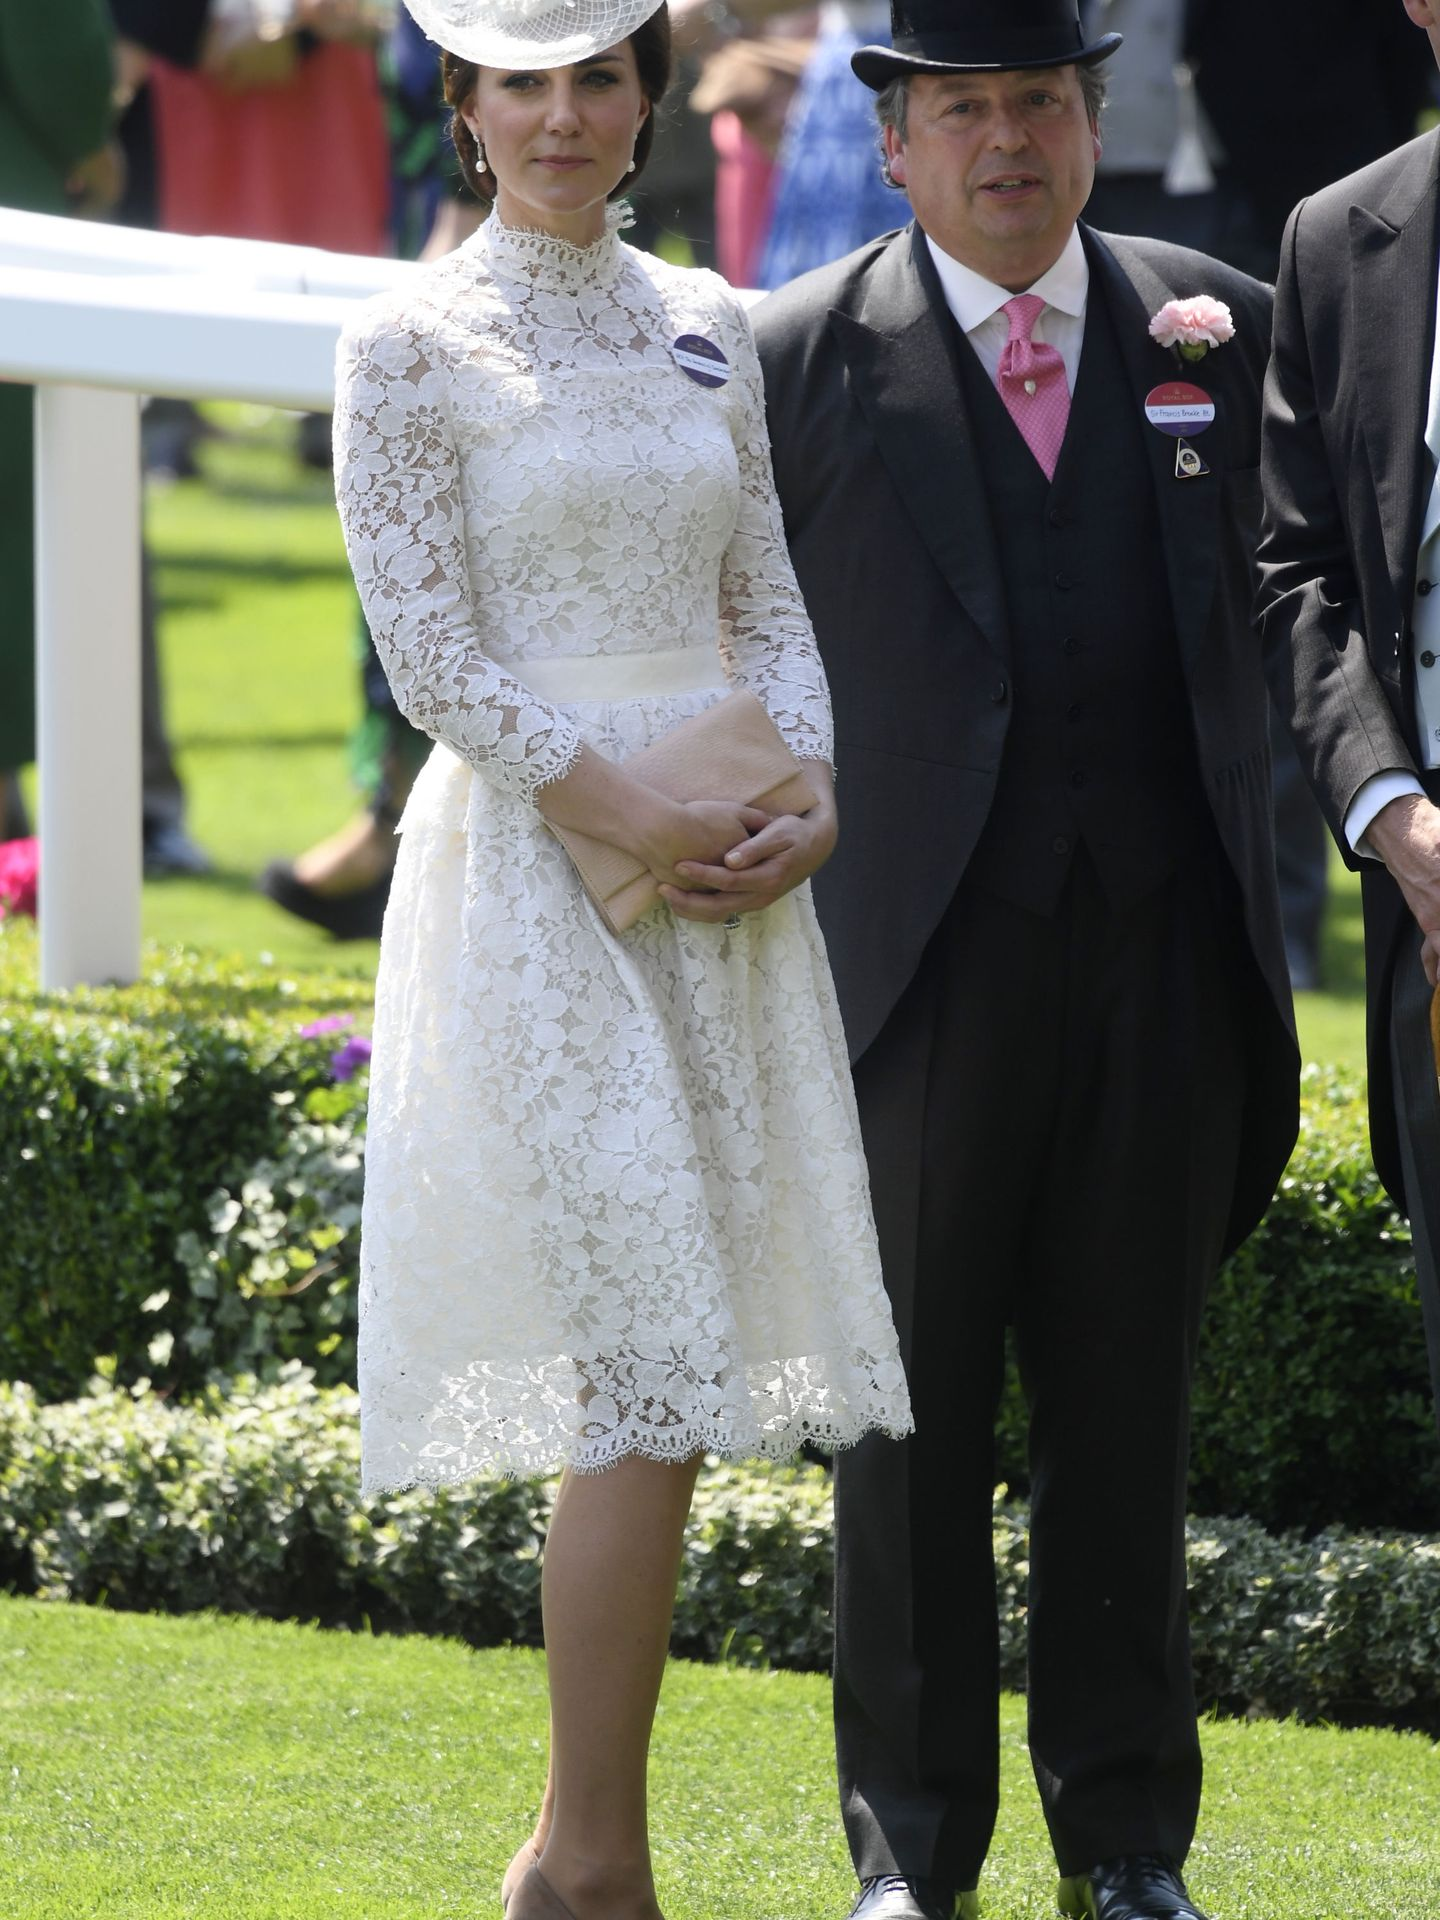 Britain Horse Racing - Royal Ascot - Ascot Racecourse - June 20, 2017 Catherine, the Duchess of Cambridge with Sir Francis Brooke at Ascot REUTERS Toby Melville Livepic